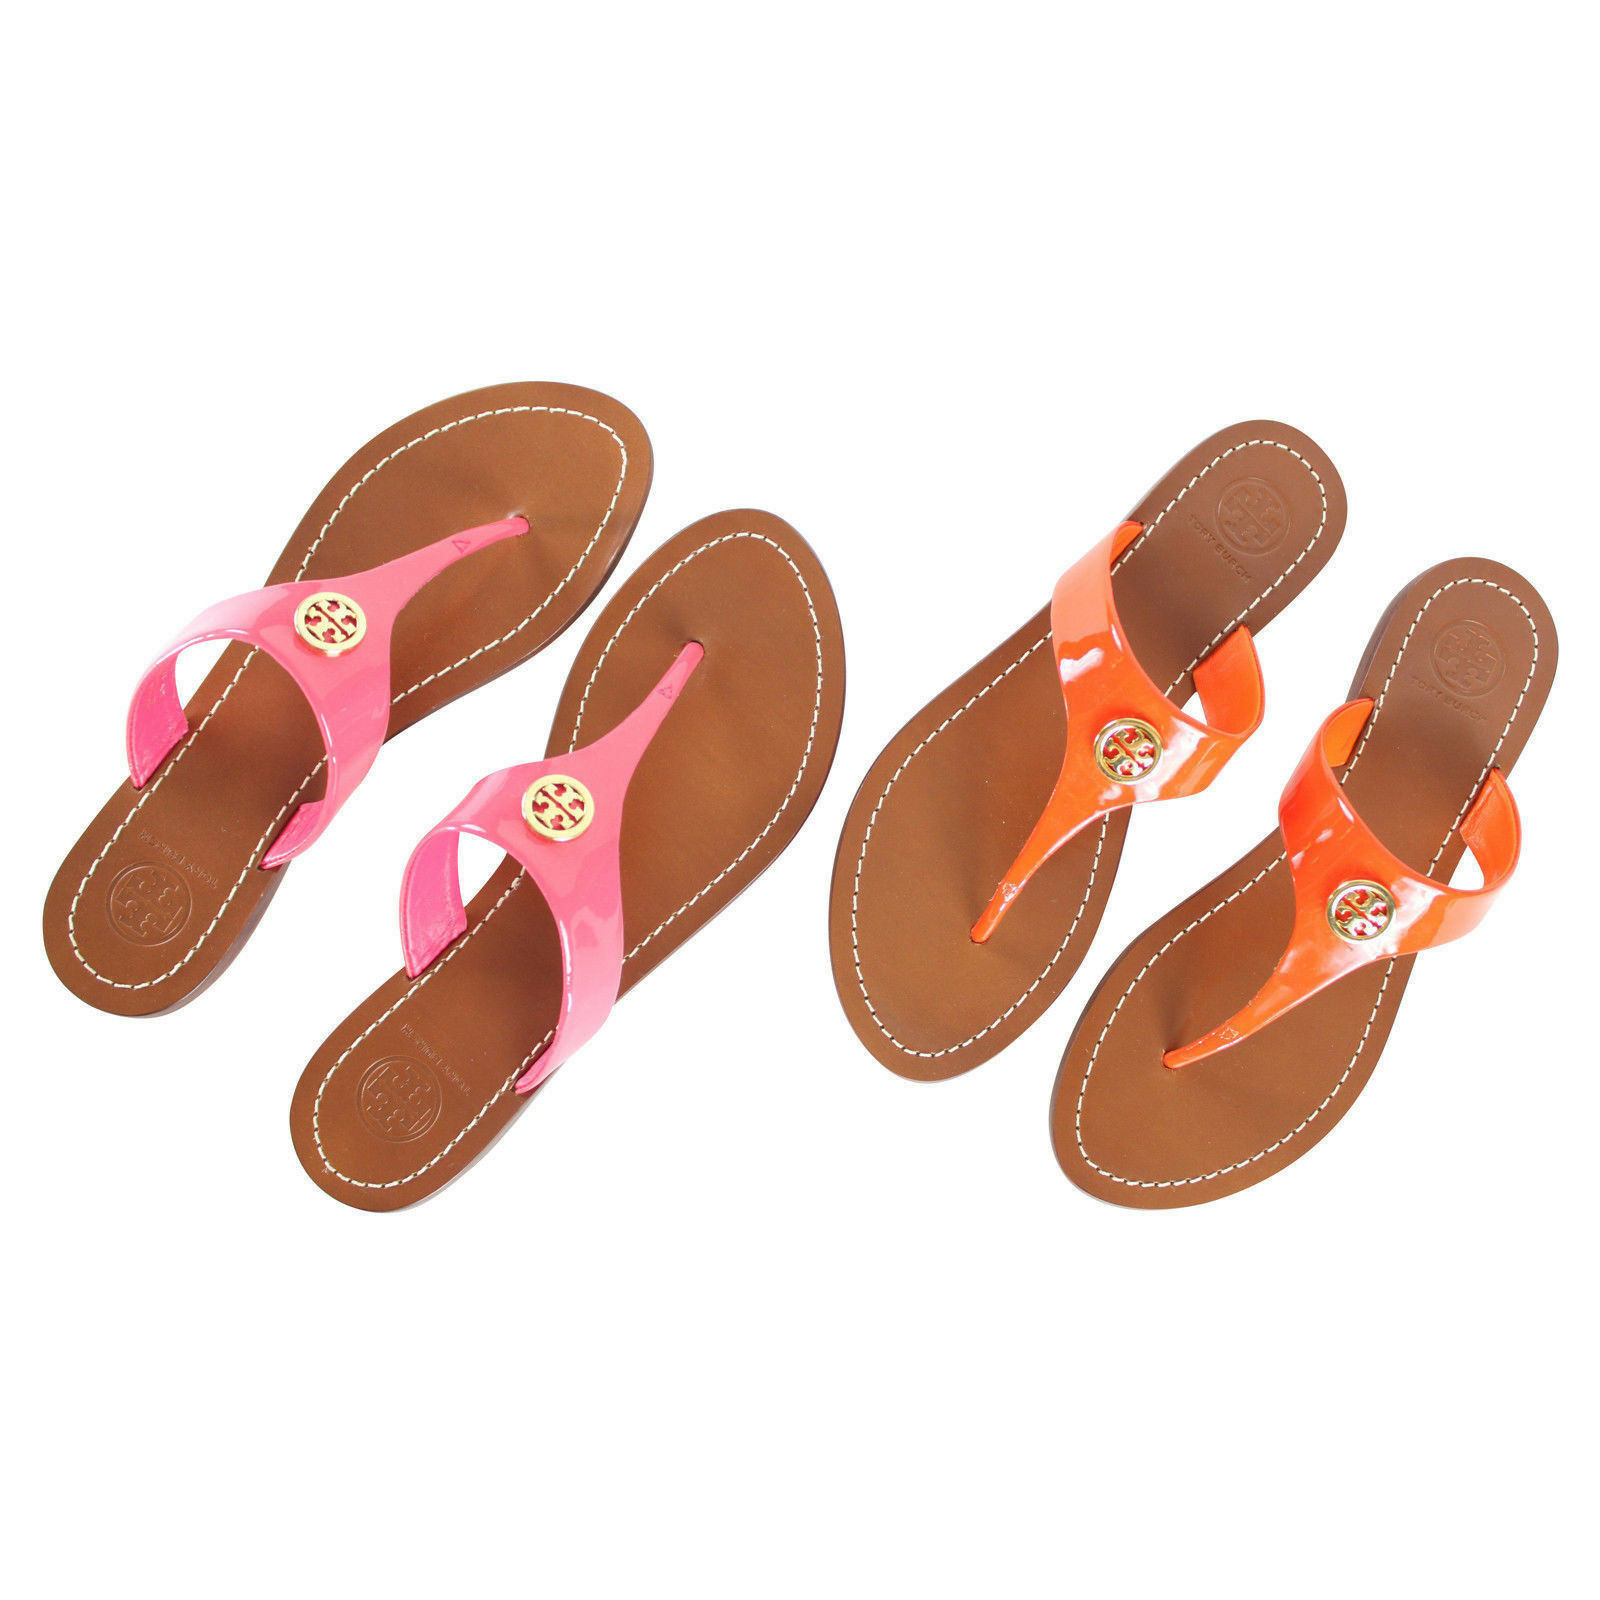 587cce559df67f Details about New Tory Burch CAMERON Patent Leather Thong Sandals Pick a  Color  185